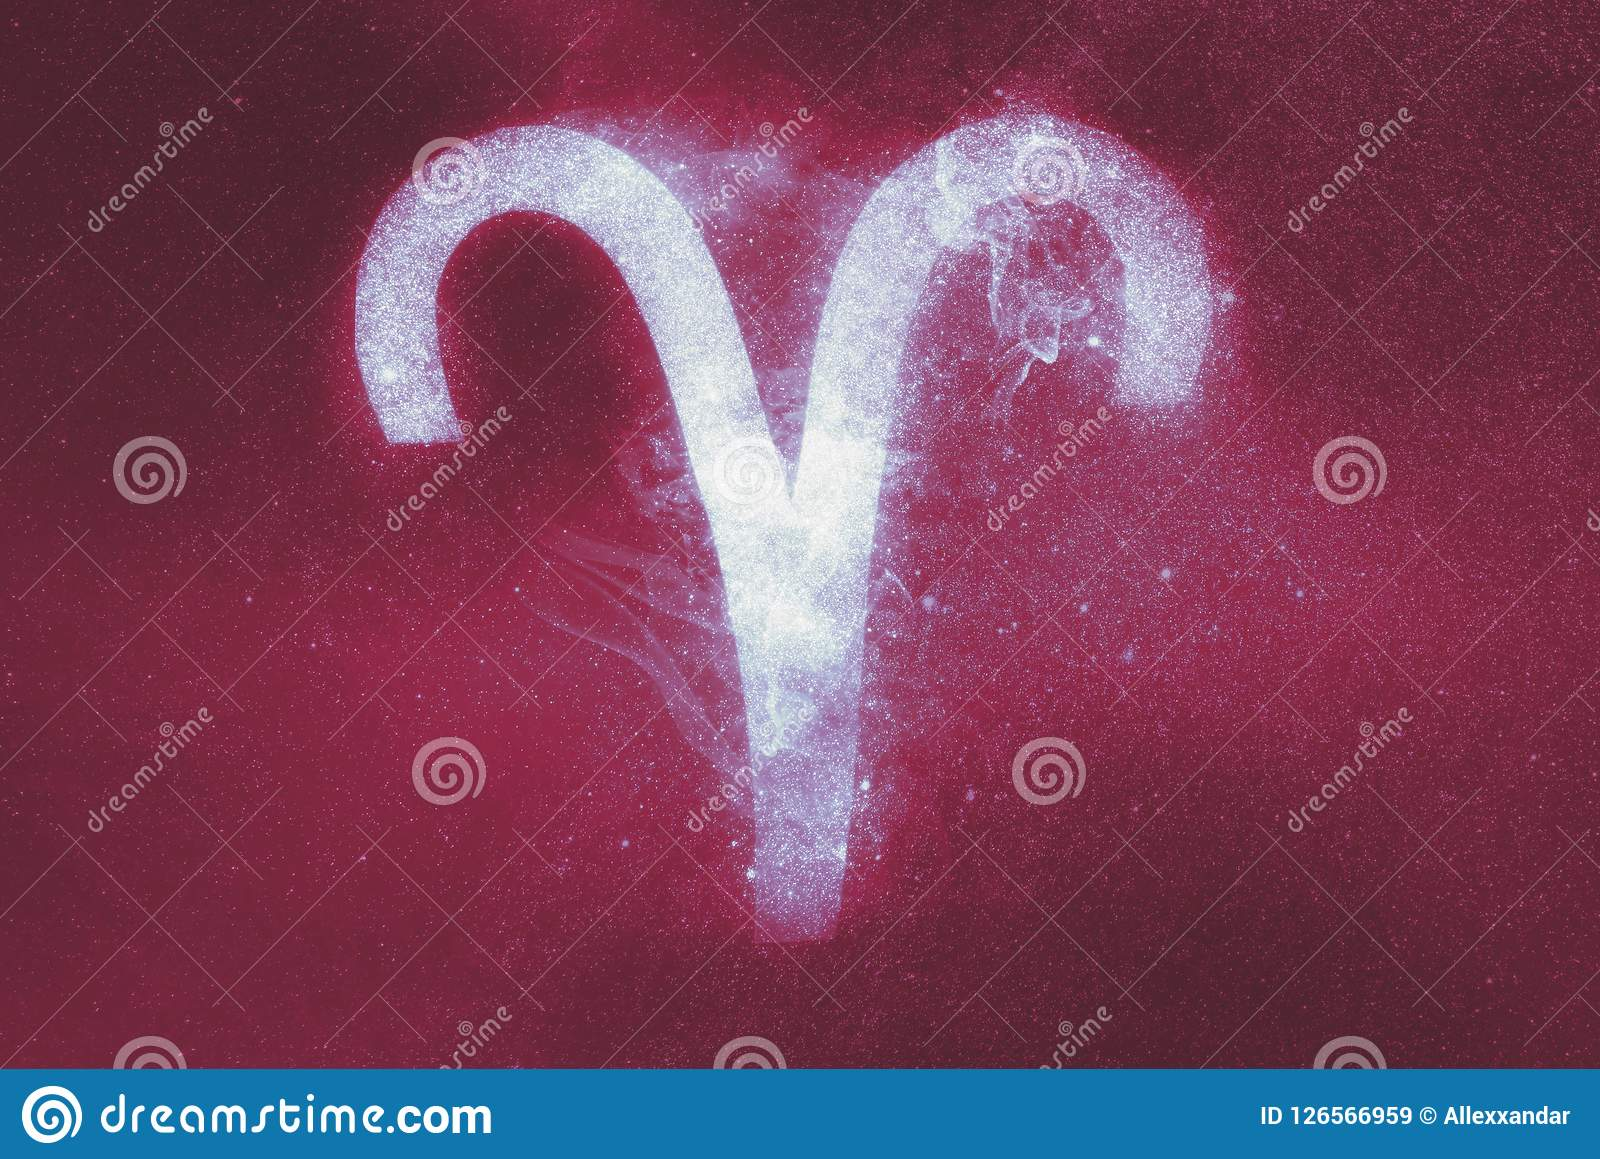 Aries Zodiac Sign. Abstract background